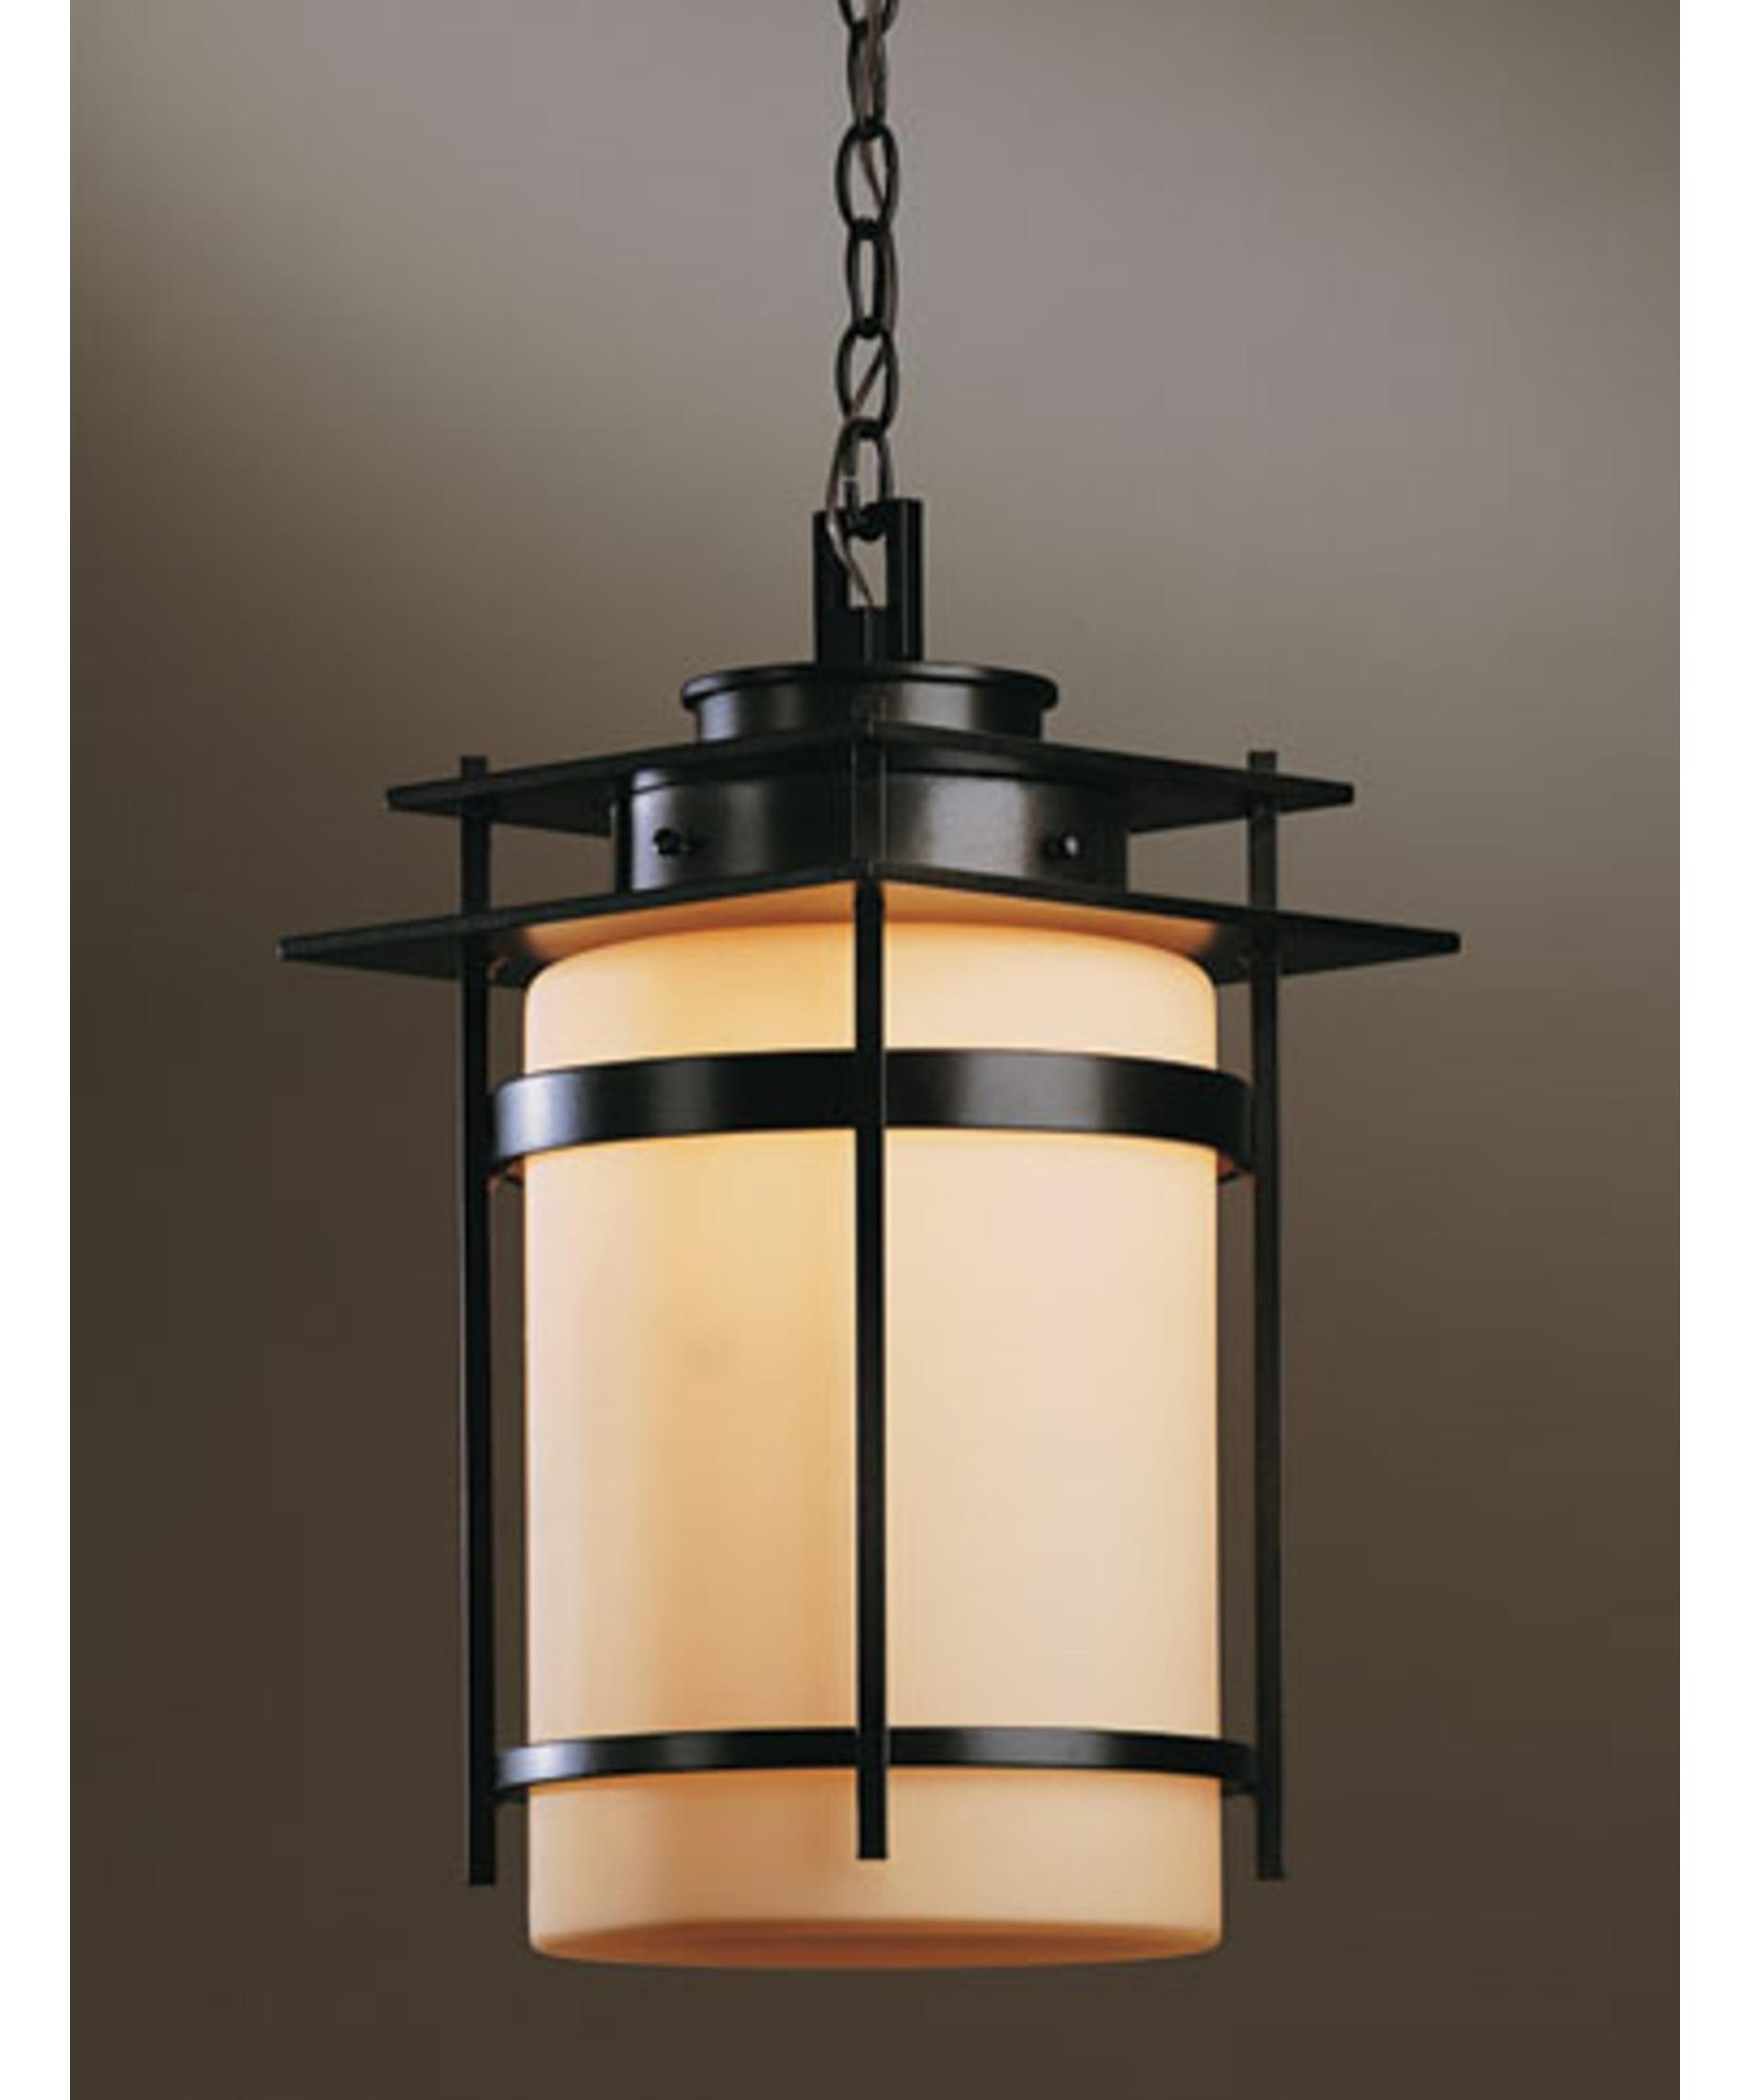 Hanging Porch Light Hinkley Lighting 2372 Nantucket 6 Inch Wide 2 Inside Most Recent Contemporary Hanging Porch Hinkley Lighting (View 5 of 20)